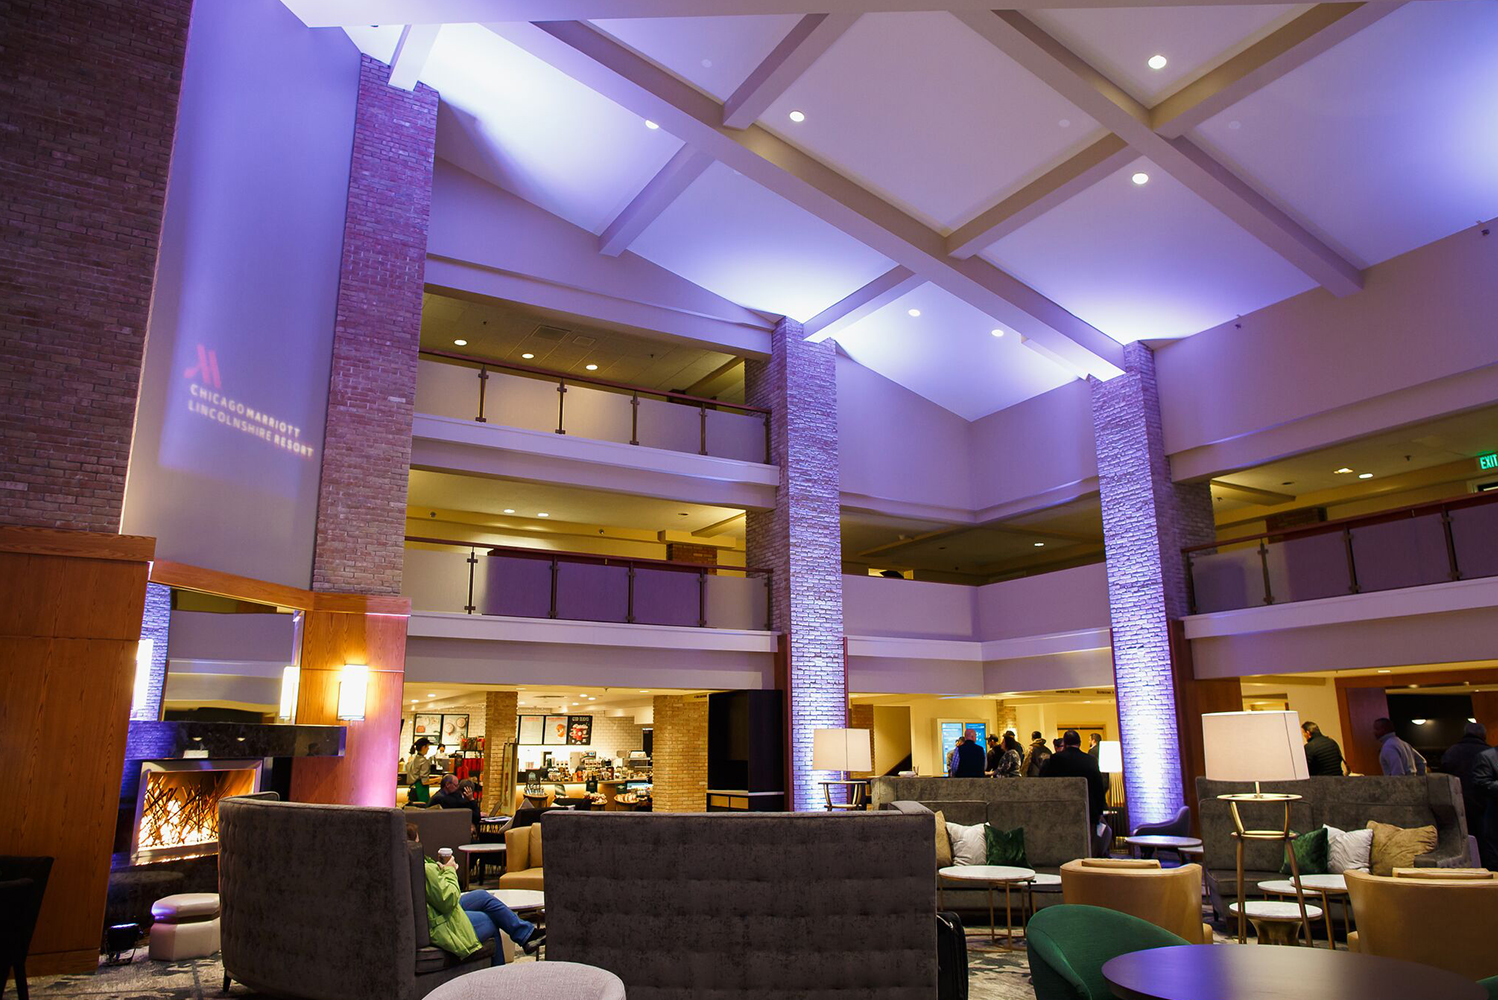 The Chicago Marriott Lincolnshire Resort has the Marriott Greatroom lobby, which has contemporary décor and layout.